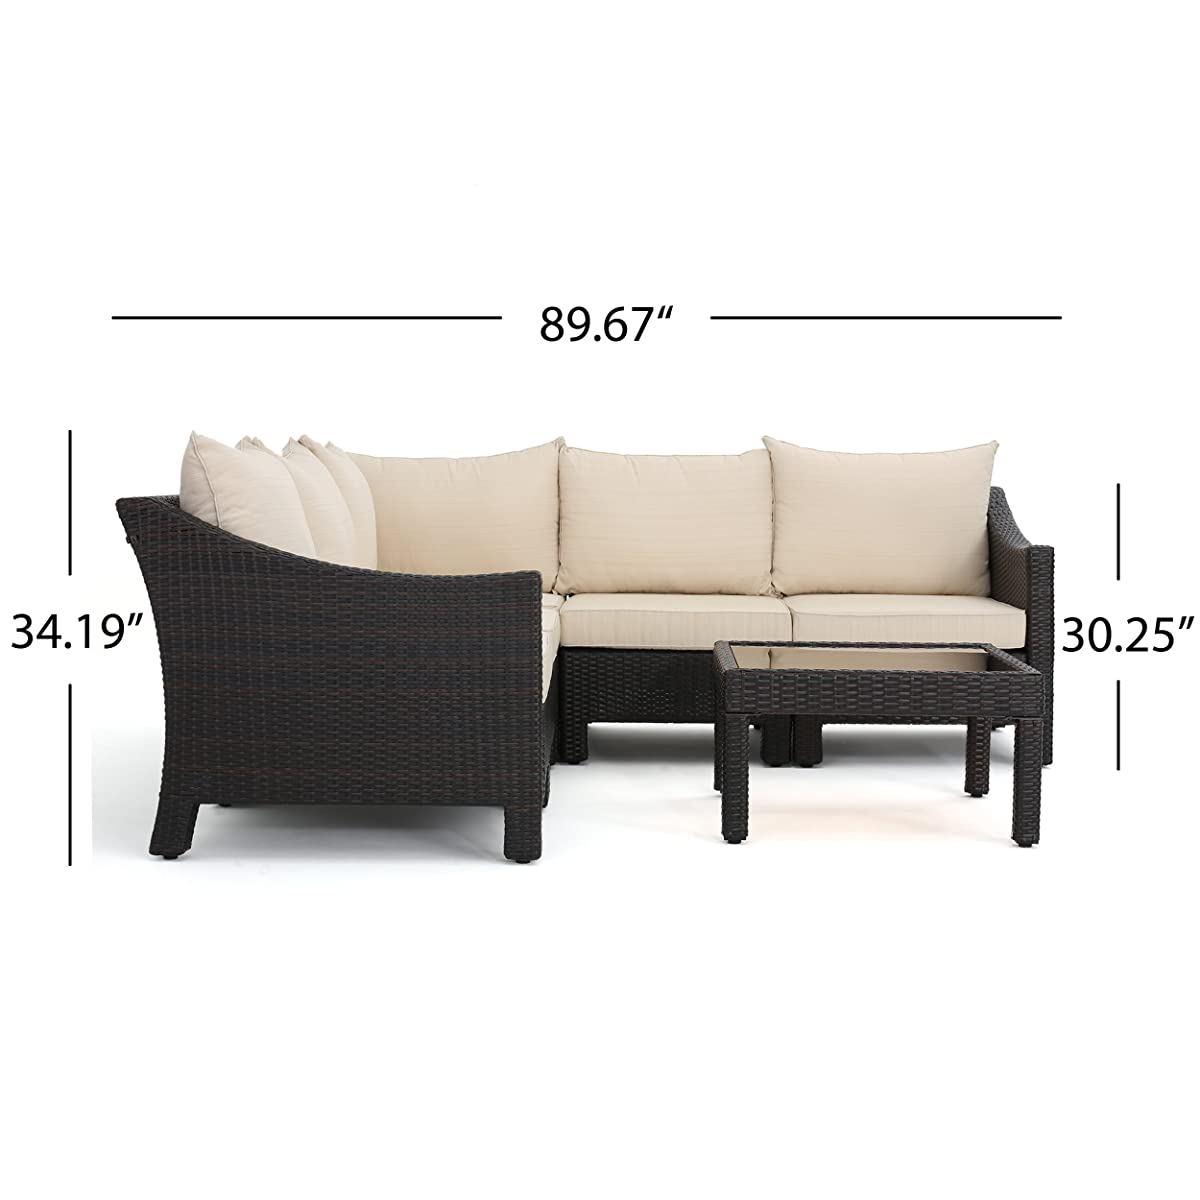 Caspian 6 Piece Outdoor Wicker Furniture Patio Sectional Sofa Set